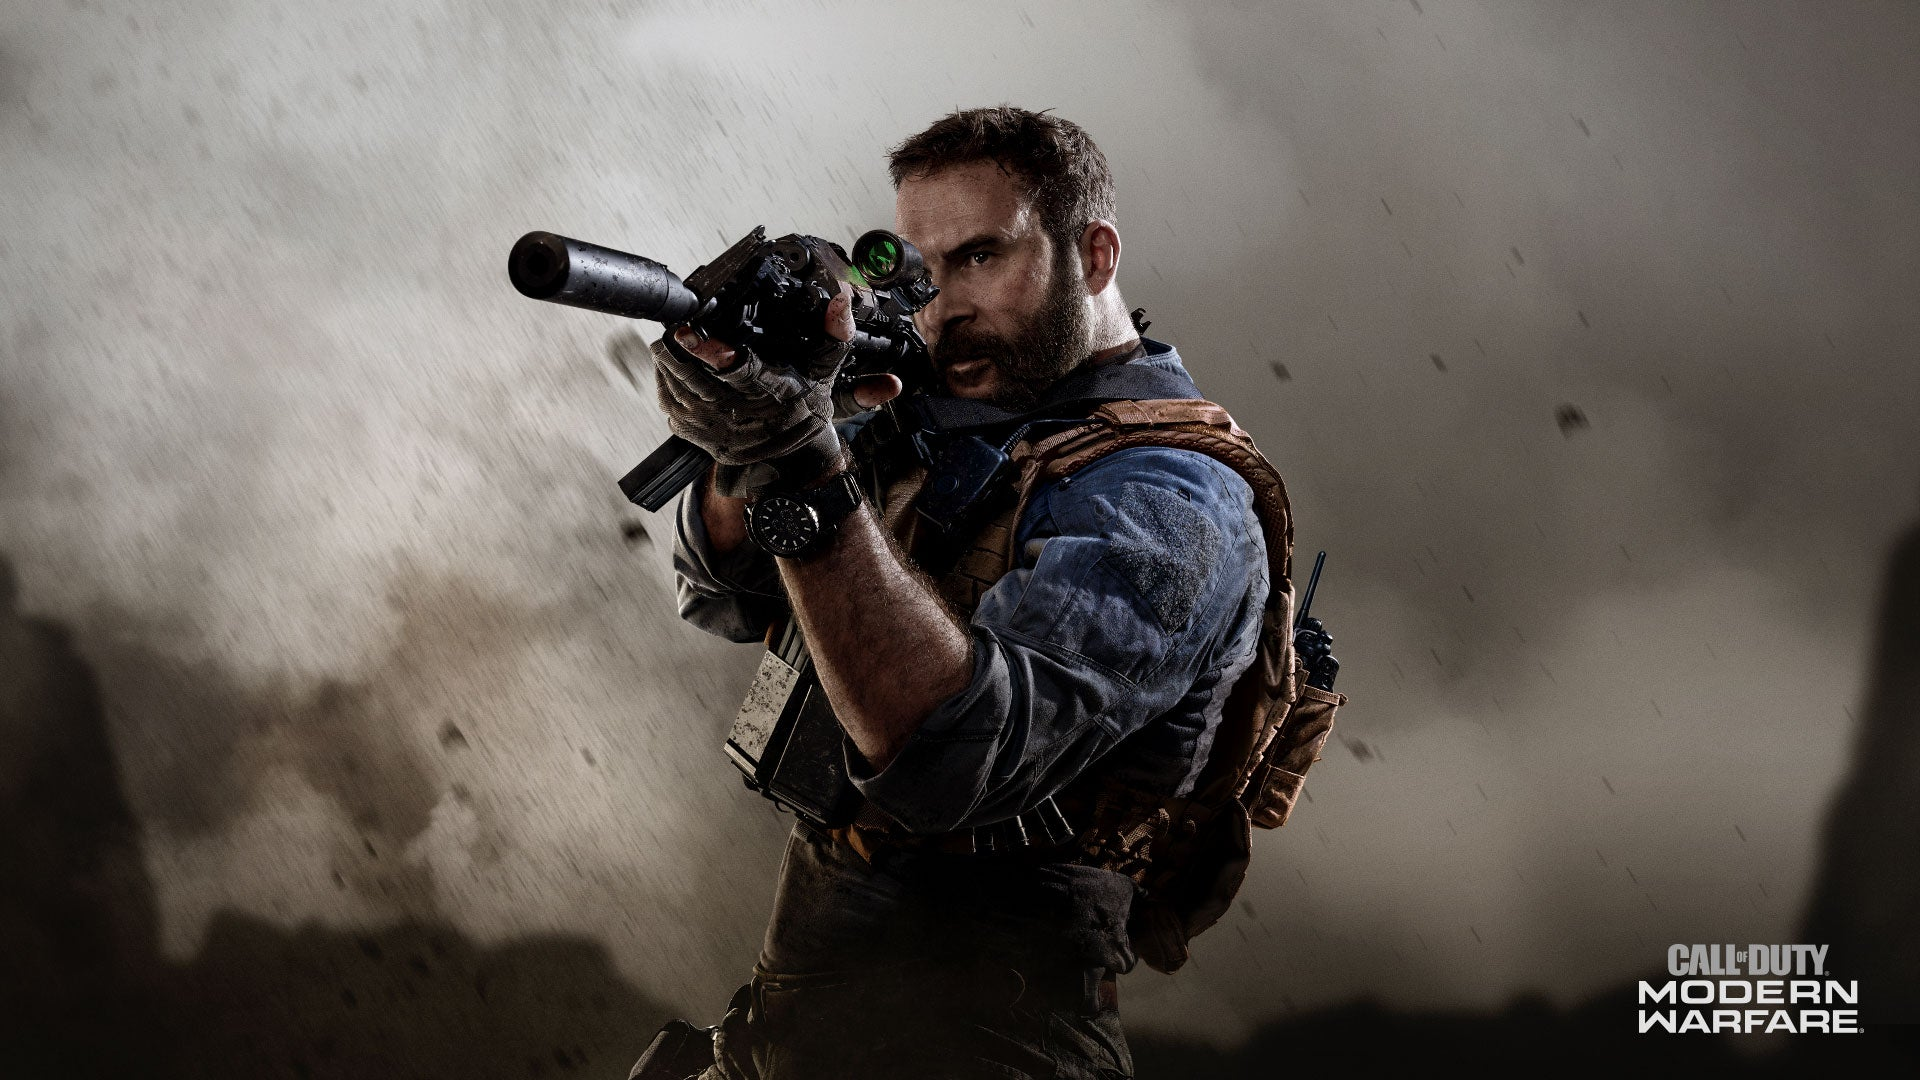 The new Call of Duty is getting a Tamagotchi that you feed kills